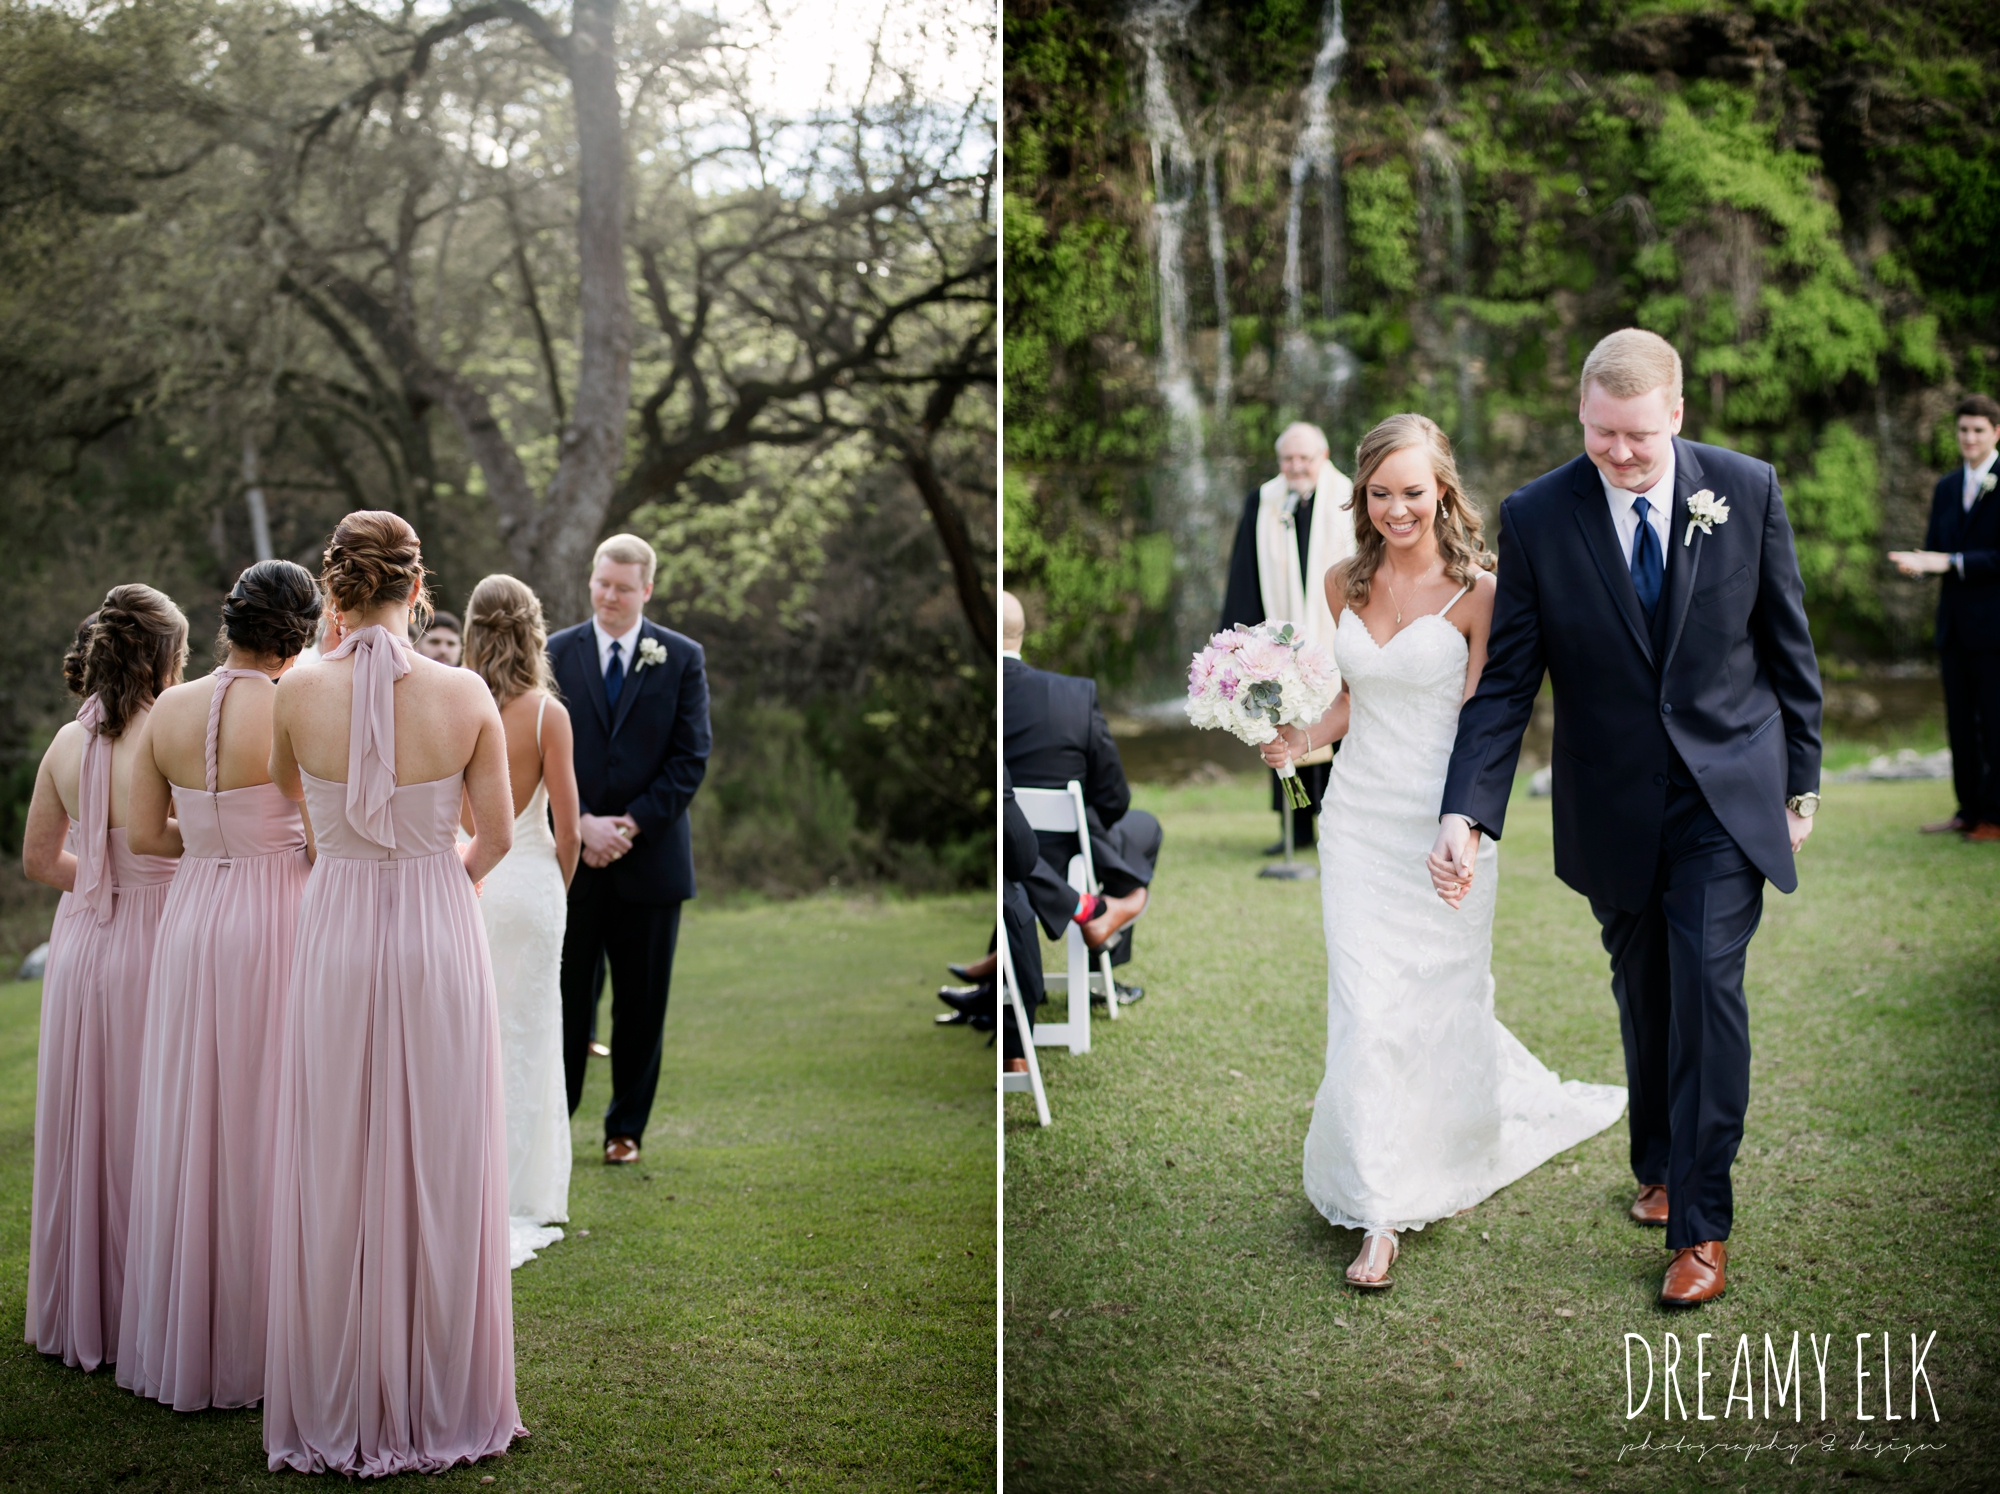 bride and bridesmaids, mix and matched floor length blush bridesmaid dresses, outdoor wedding ceremony, waterfall, bride and groom walking down the aisle, backless column sheath wedding dress, cloudy march wedding photo, canyon springs golf club wedding, san antonio, texas {dreamy elk photography and design}